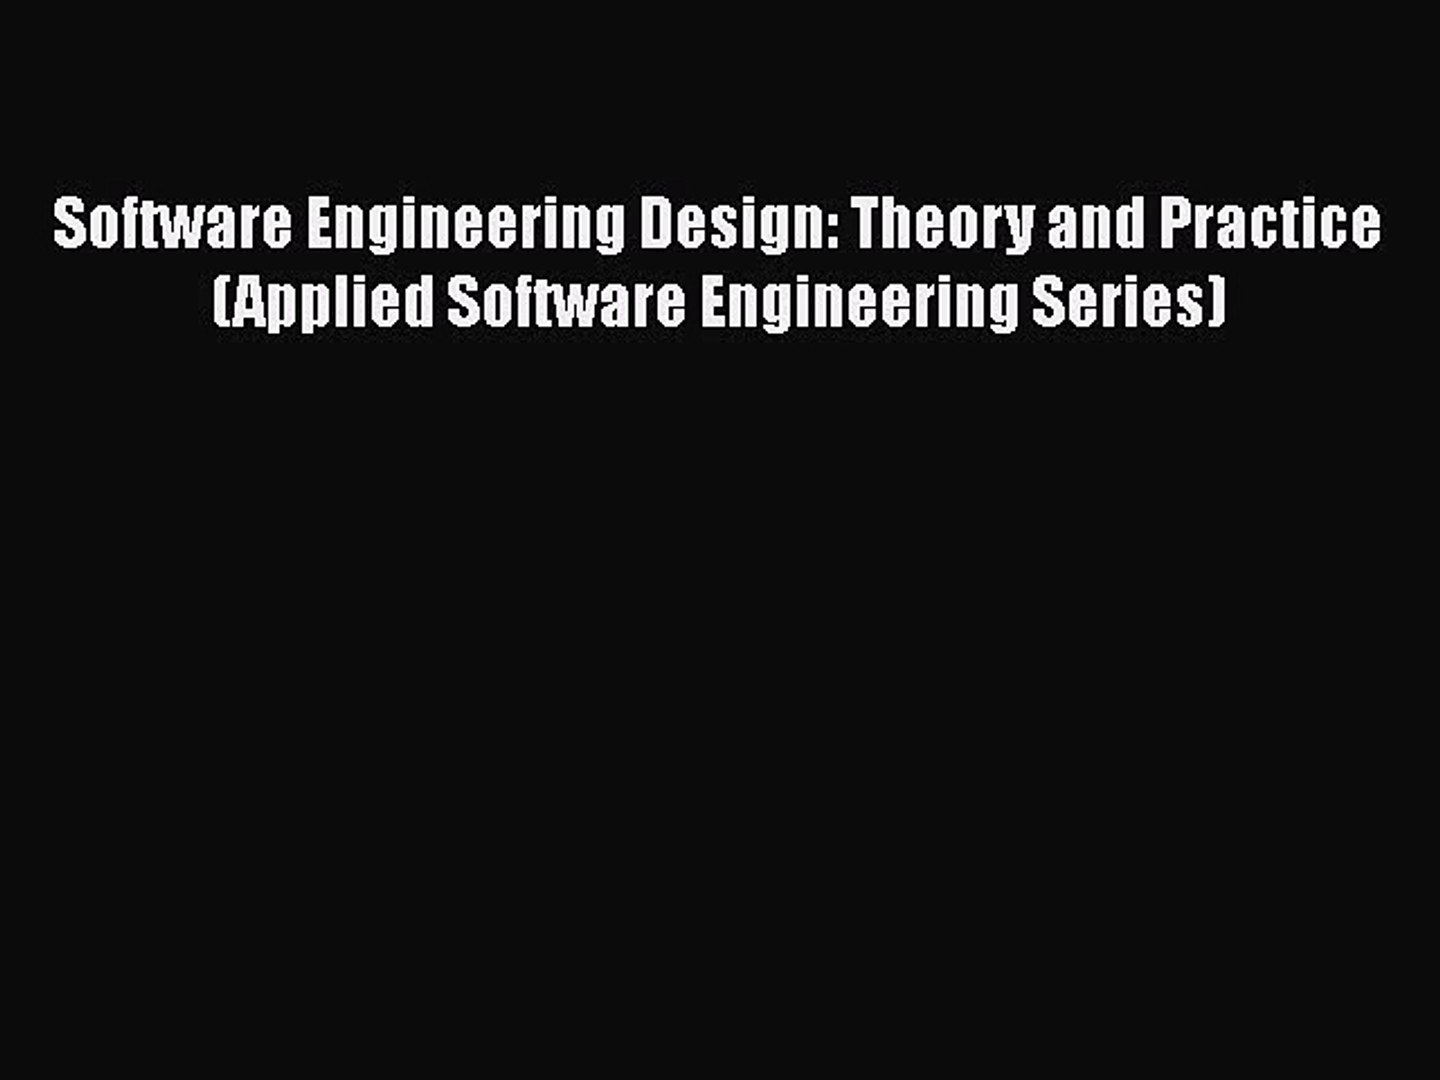 [Read Book] Software Engineering Design: Theory and Practice (Applied Software Engineering